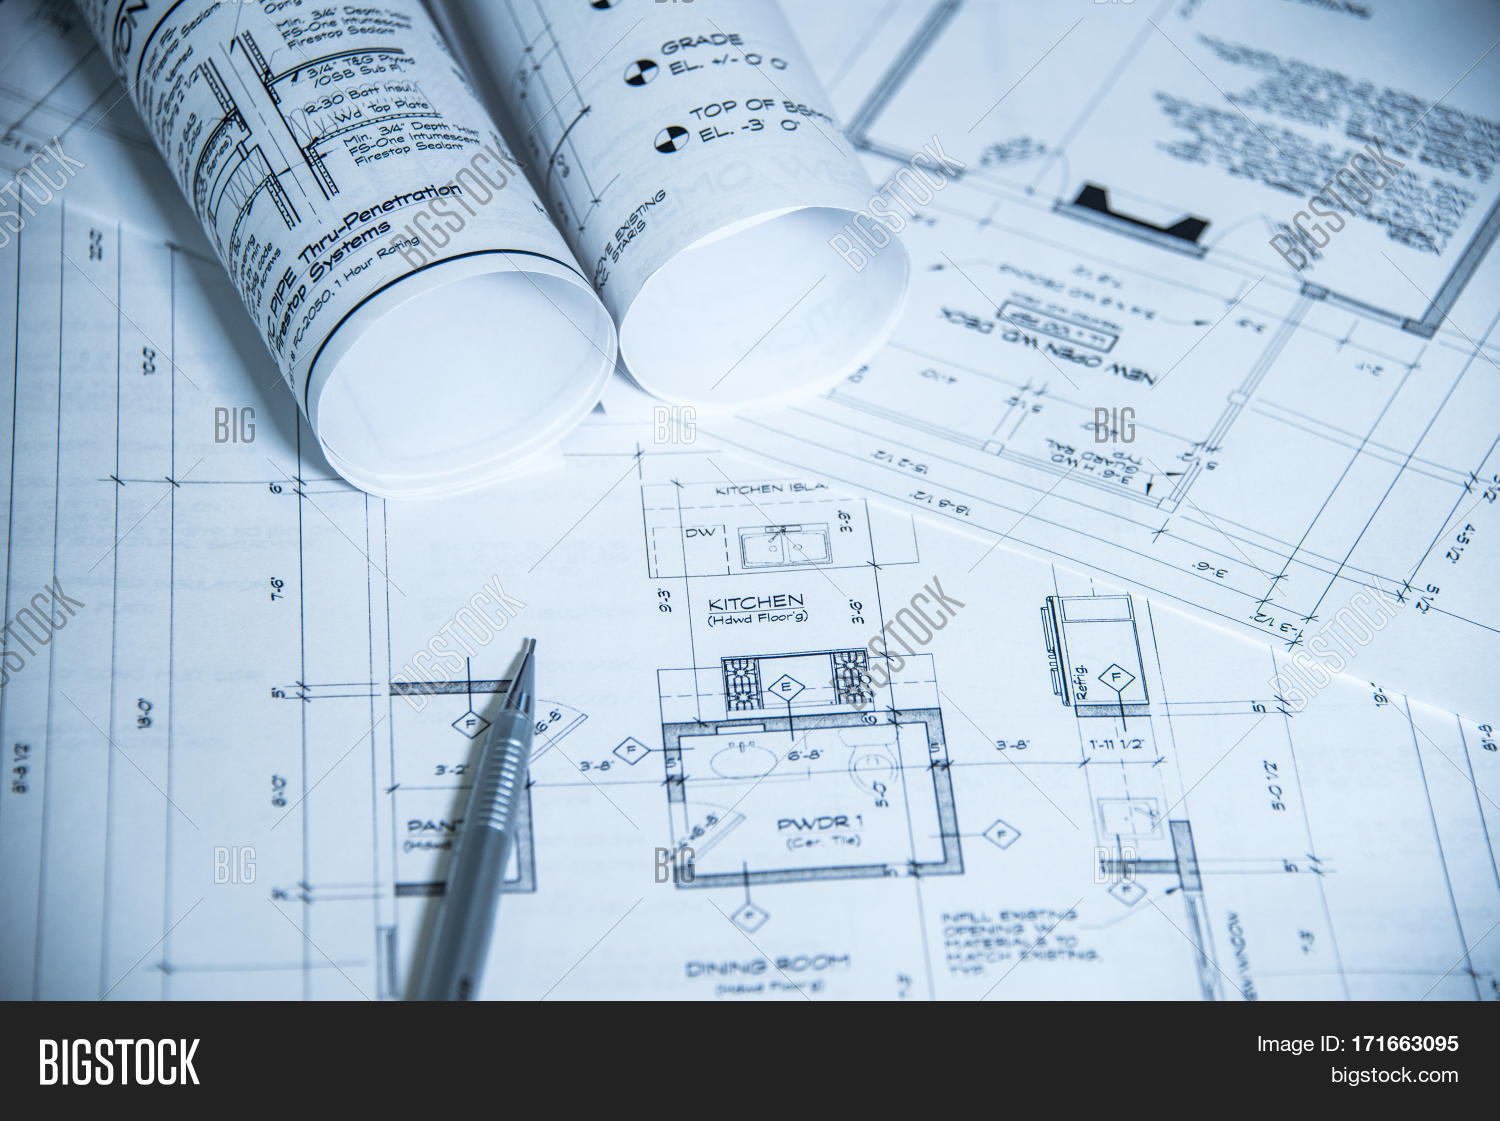 Imagen y foto house blueprints blue print style bigstock house blueprints blue print style floor plans on architects desk blueprint of a house malvernweather Gallery